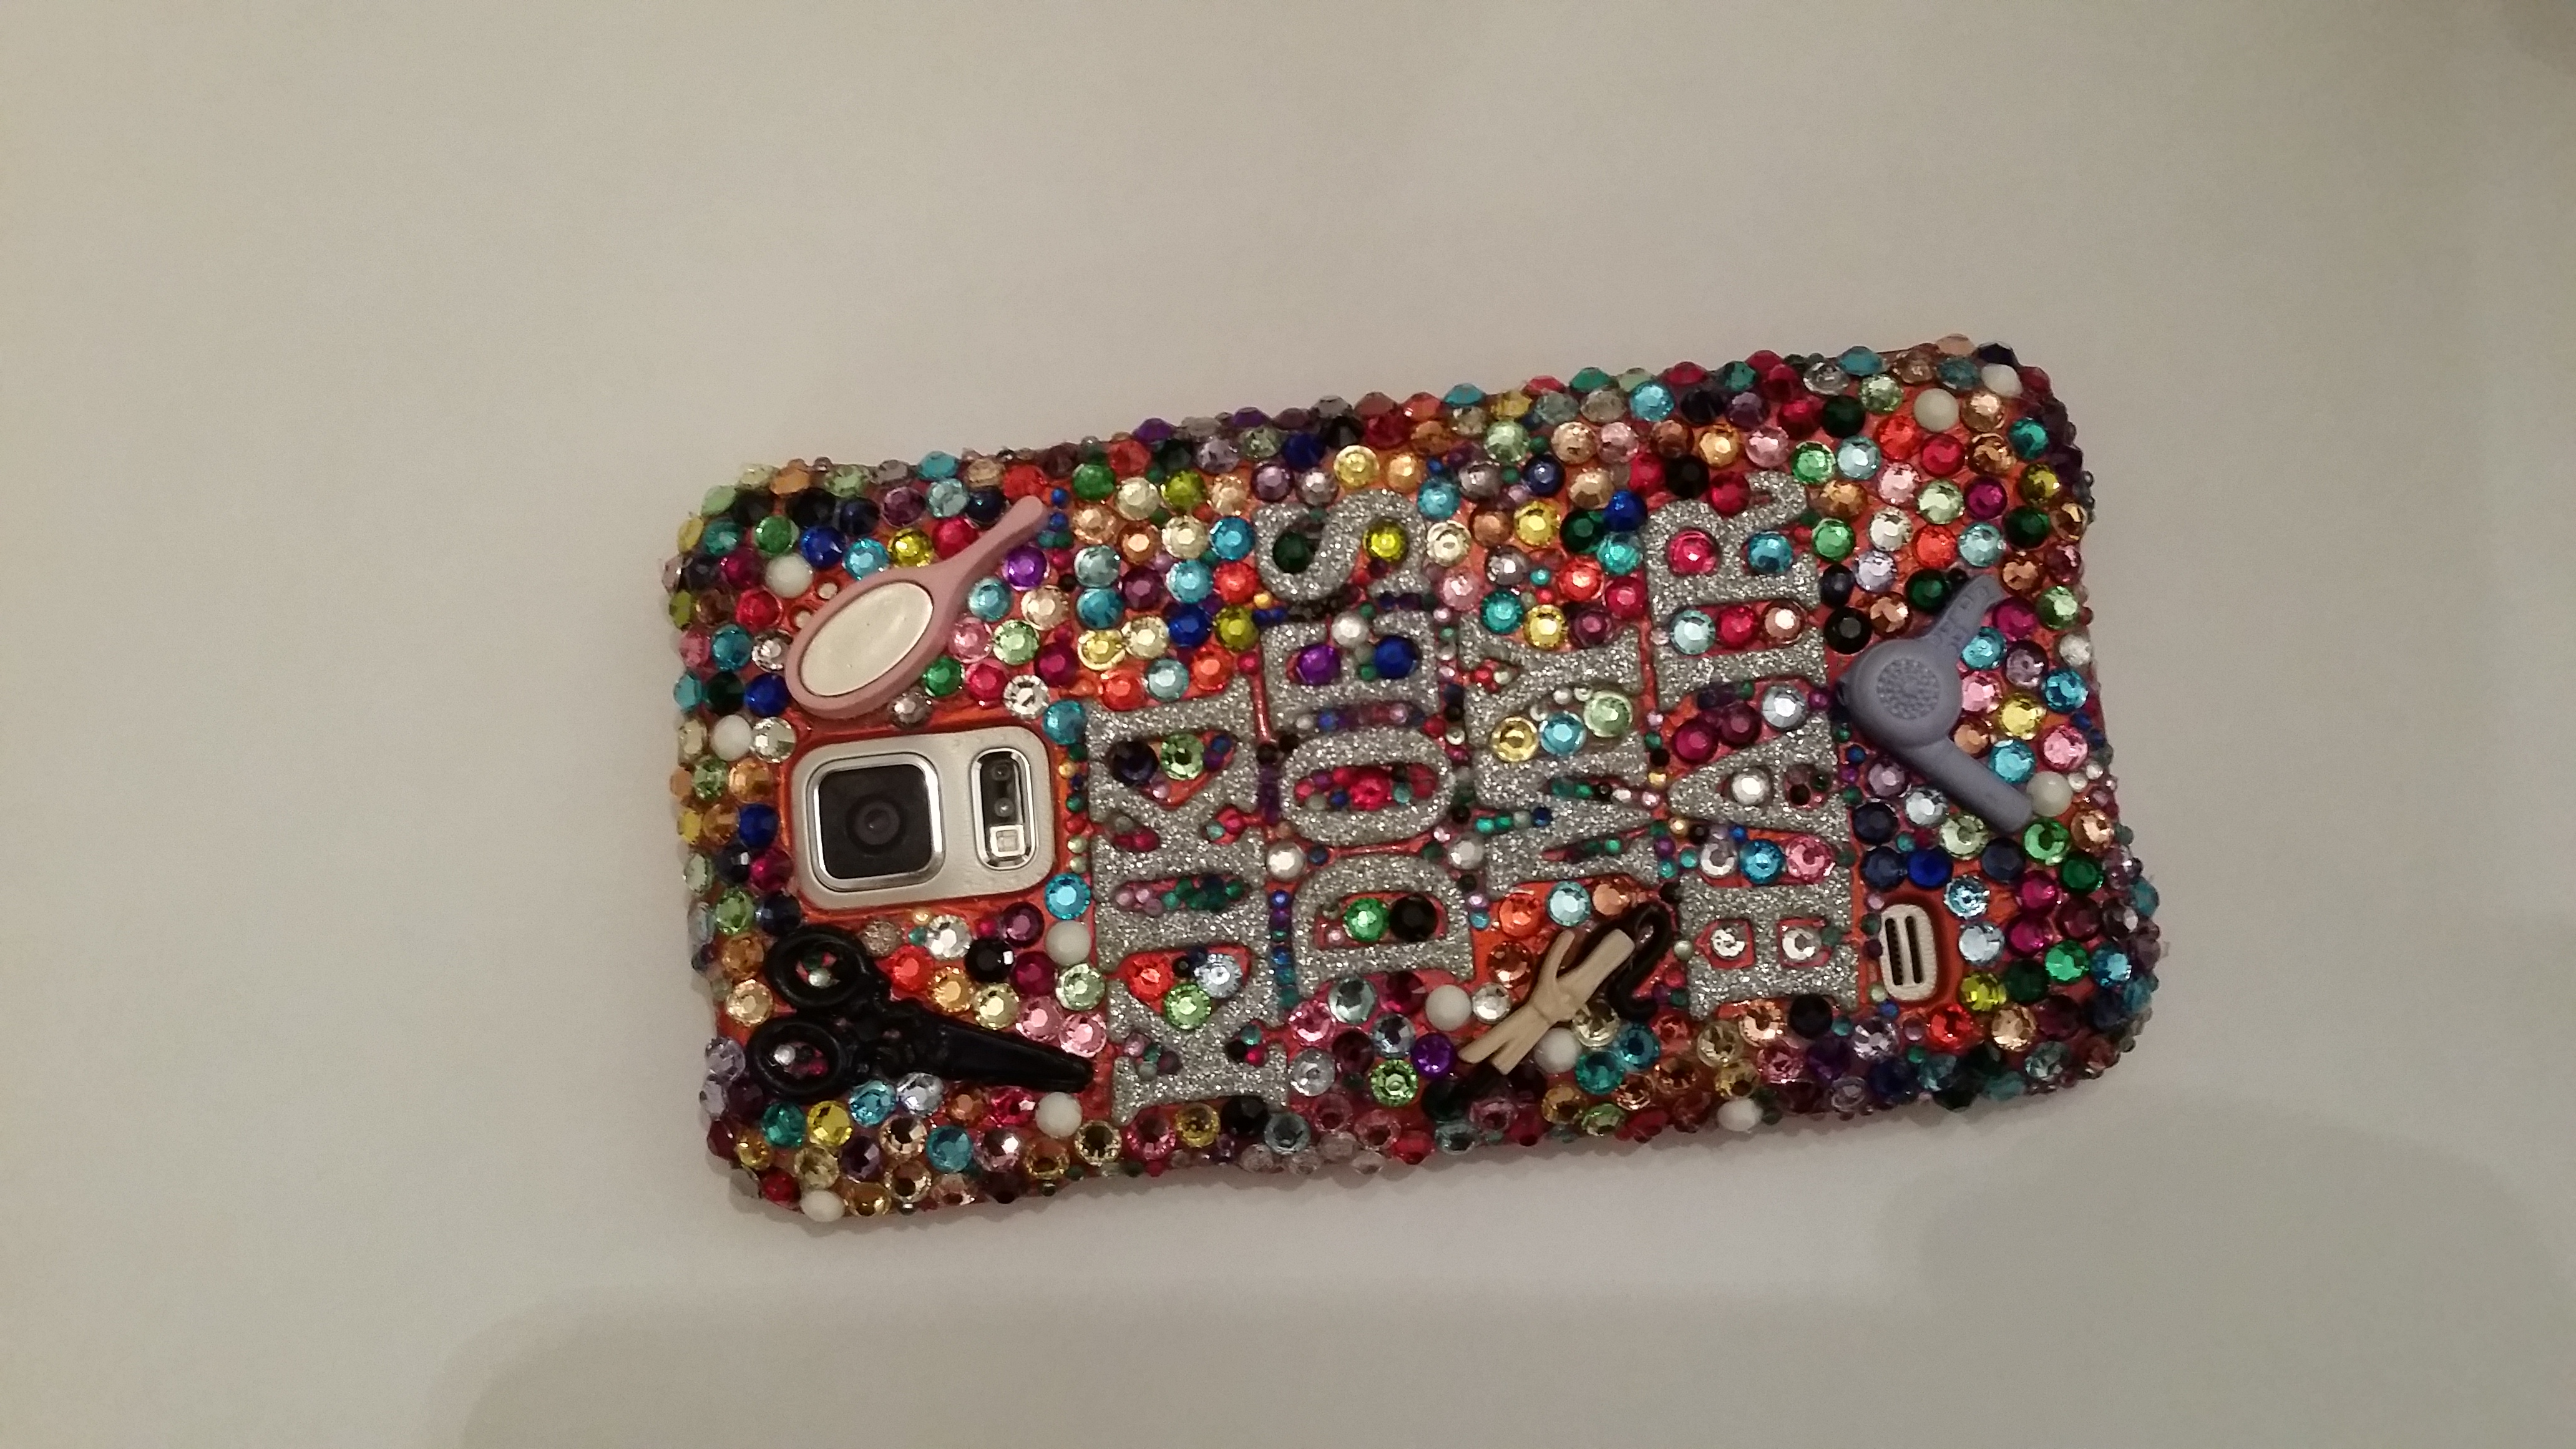 super popular dfeaf 52334 Kewl Jewels Custom Samsung Galaxy S5 case from KiKi's Krazy Kewl Jewels